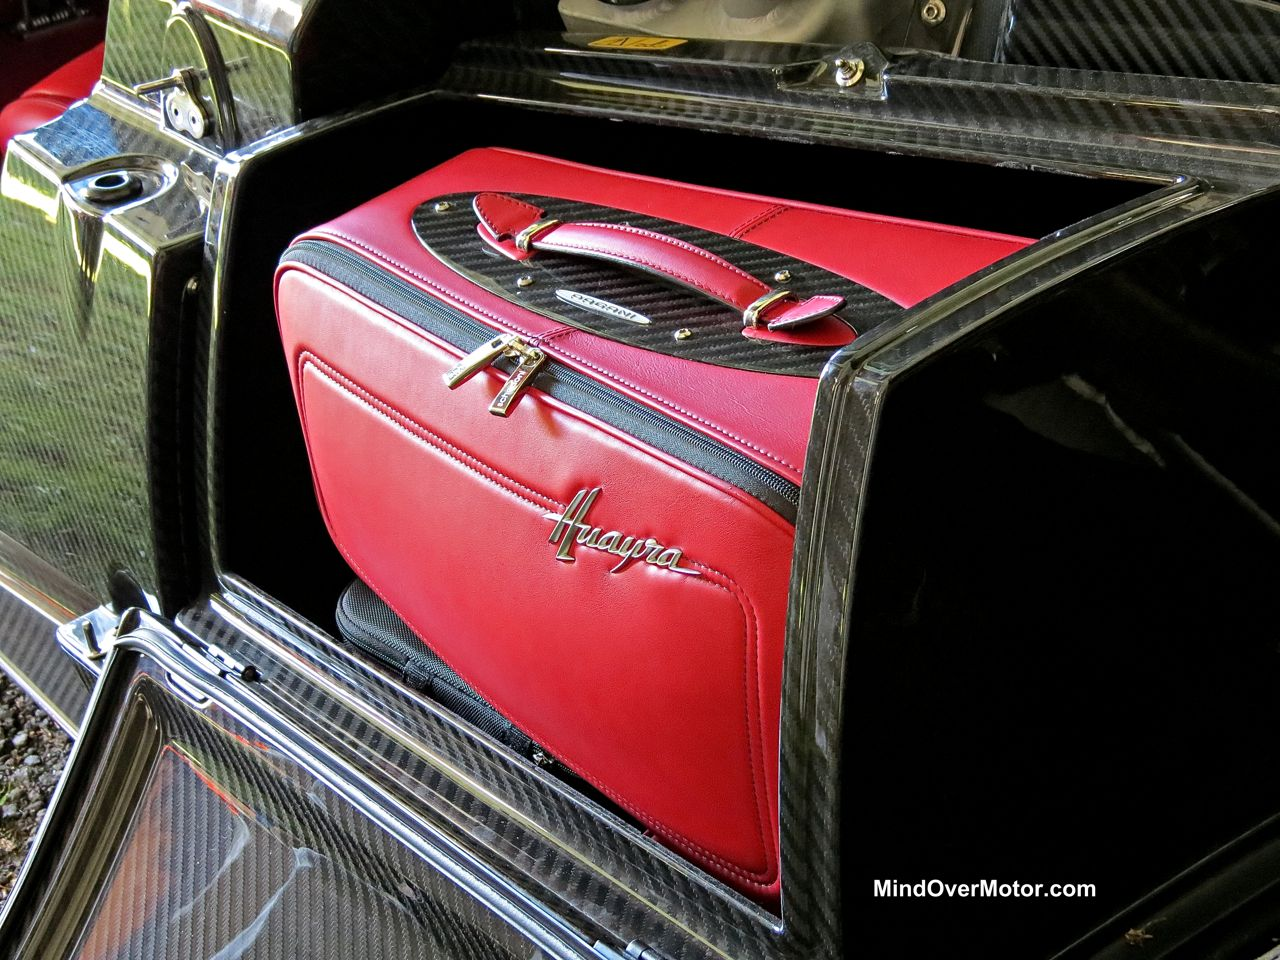 Pagani Huayra saddle bag luggage compartment